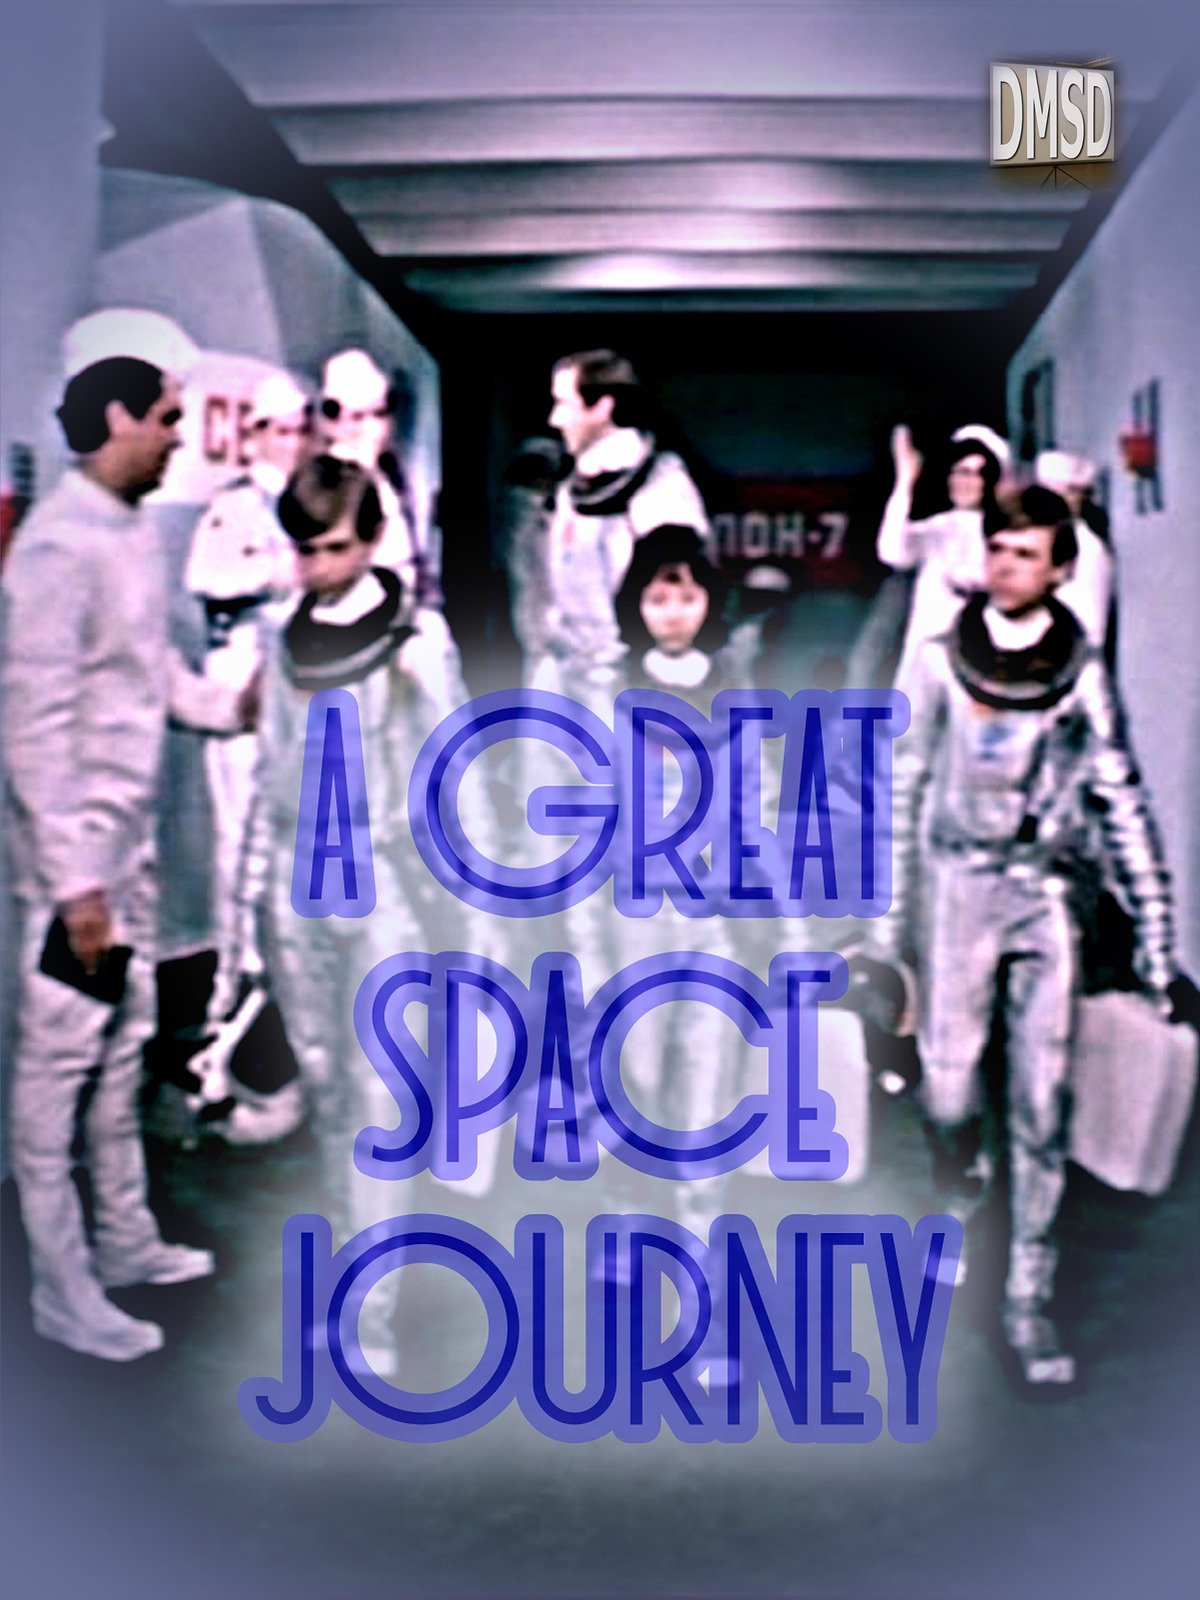 A Great Space Journey